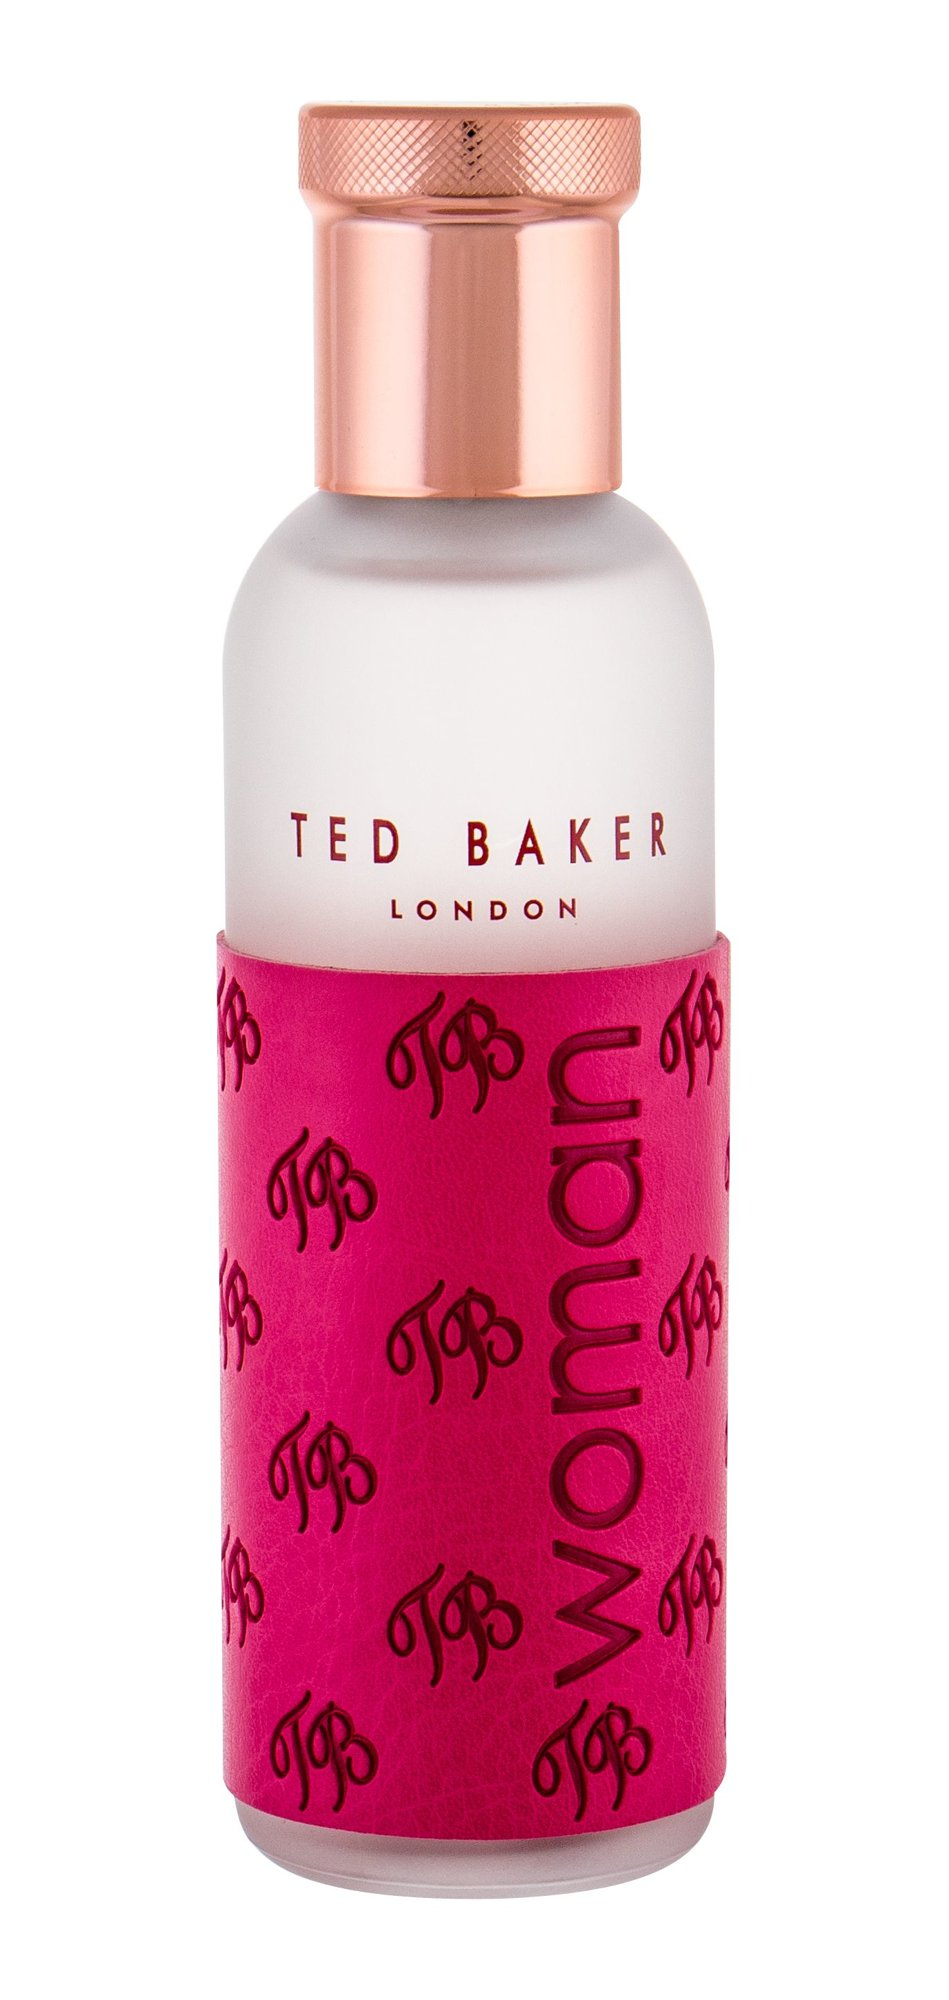 Ted Baker Woman Eau de Toilette 100ml